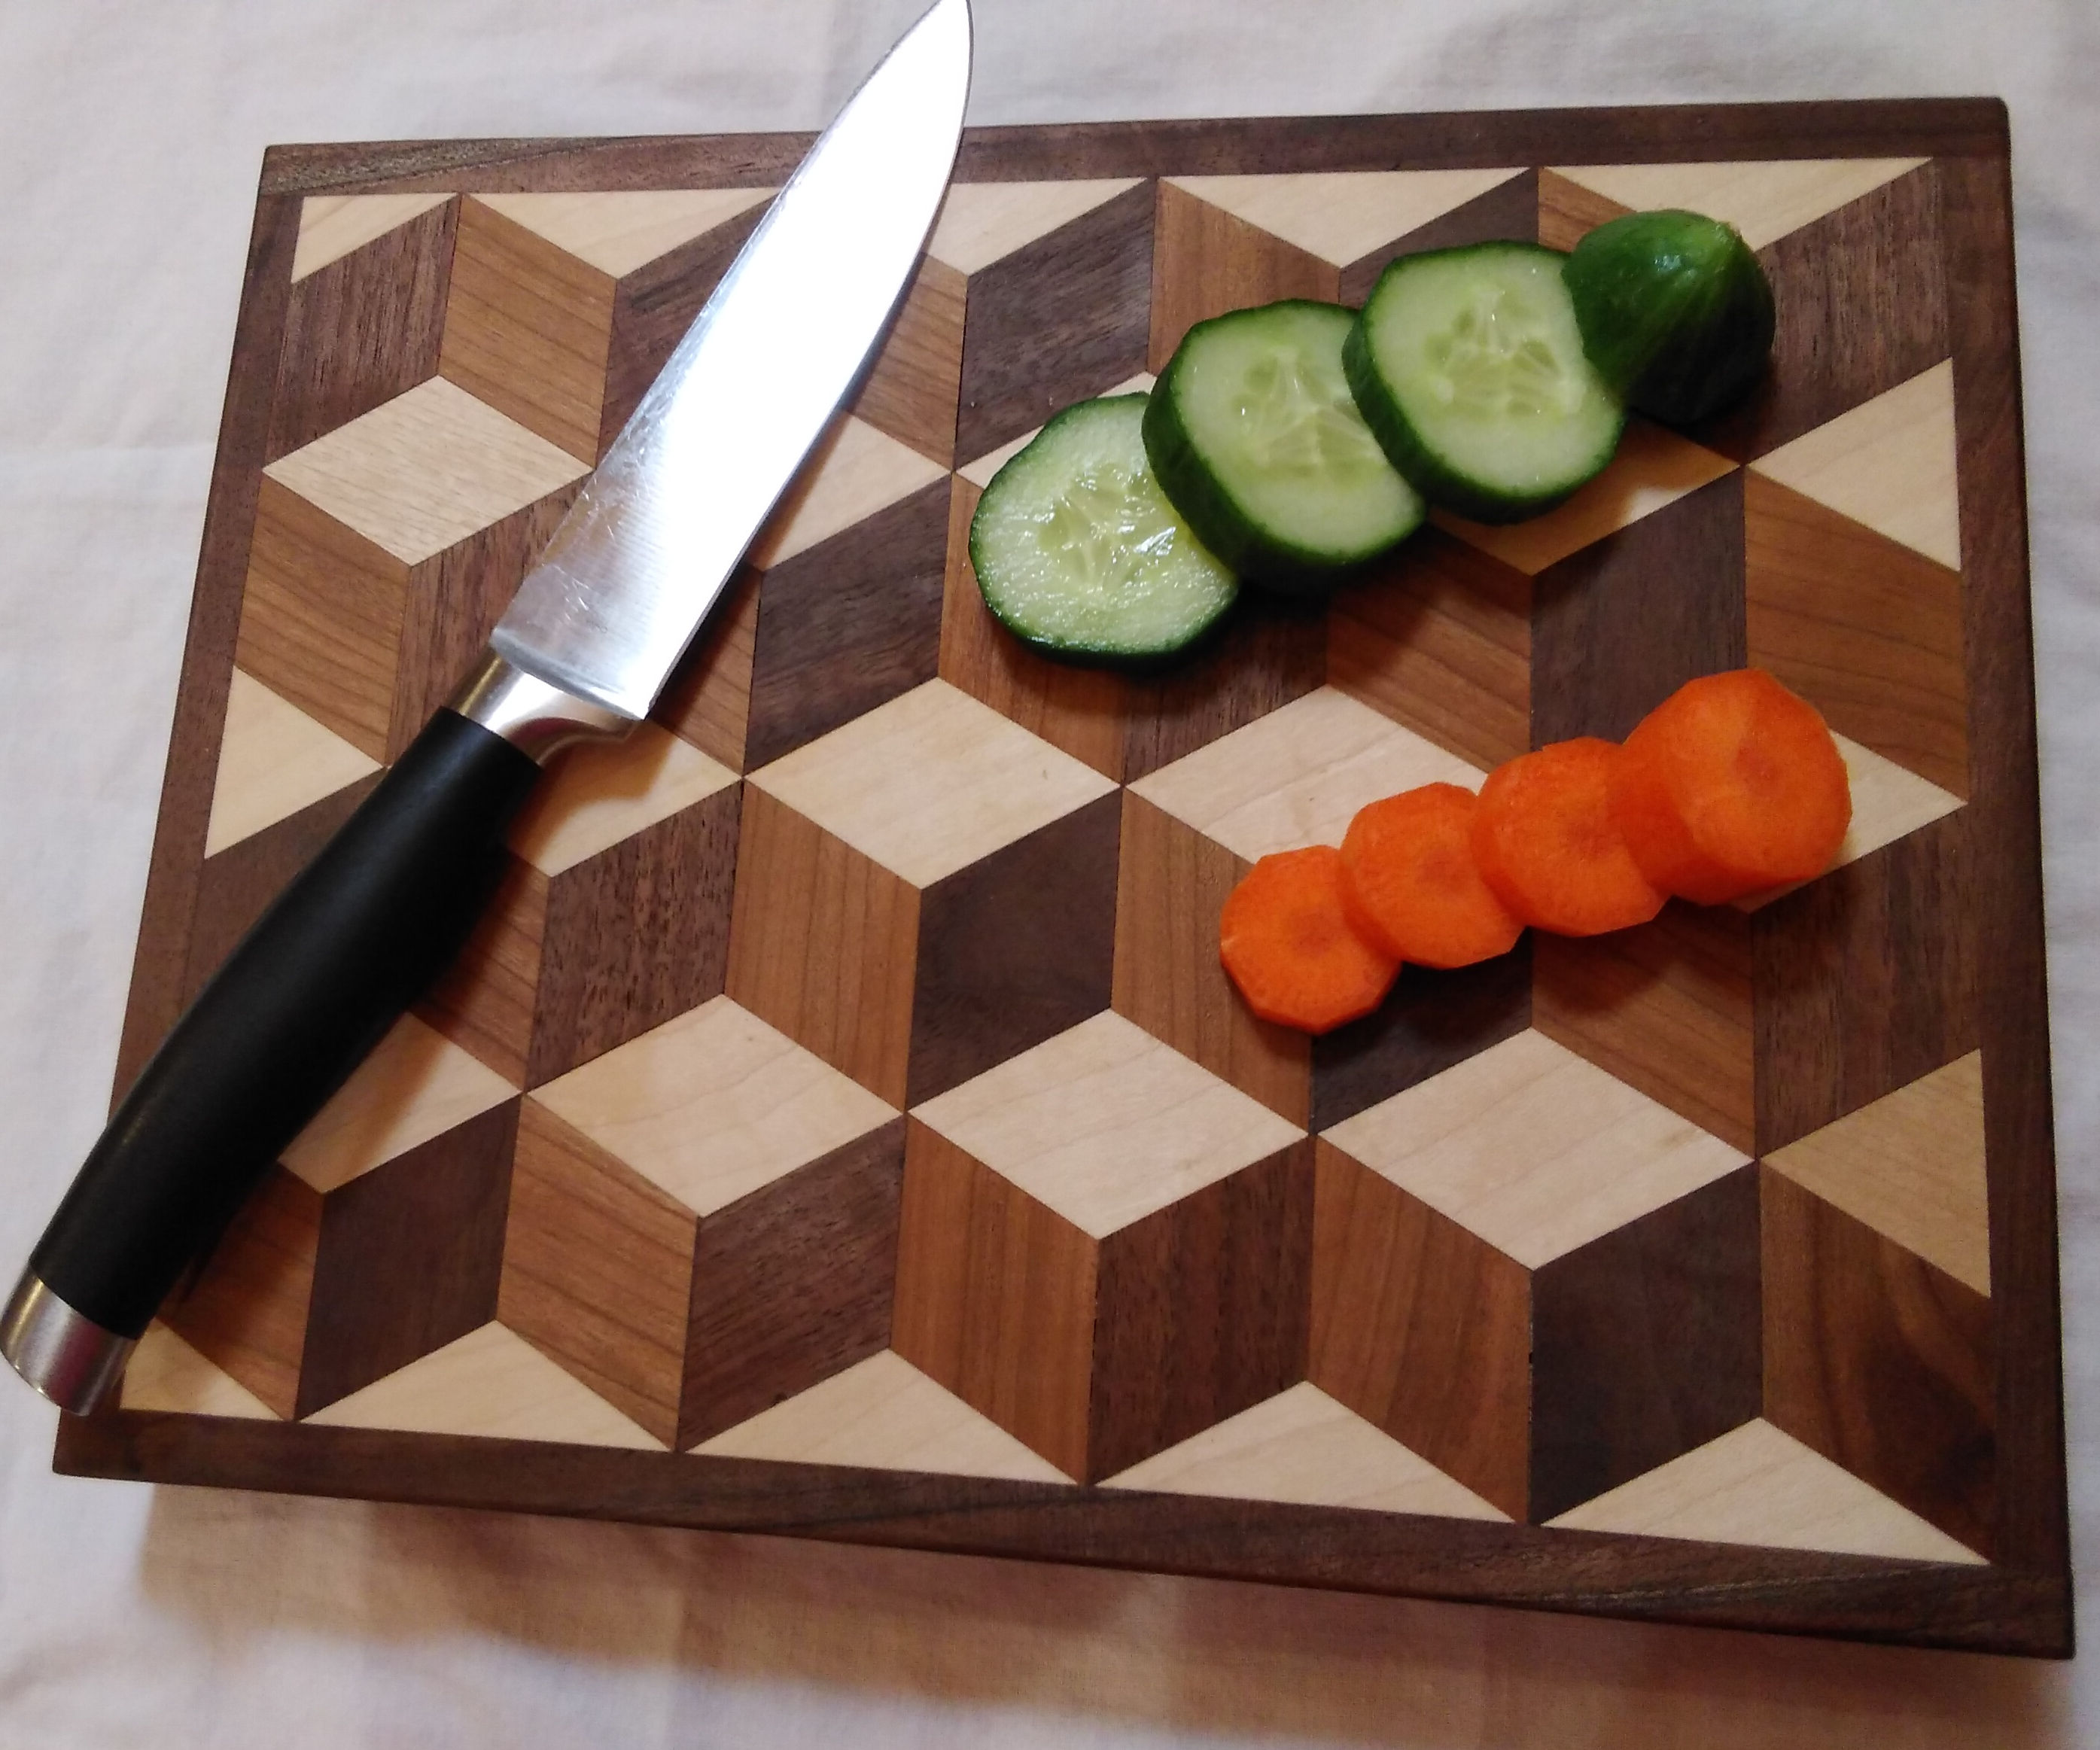 3D Endgrain Cutting Board